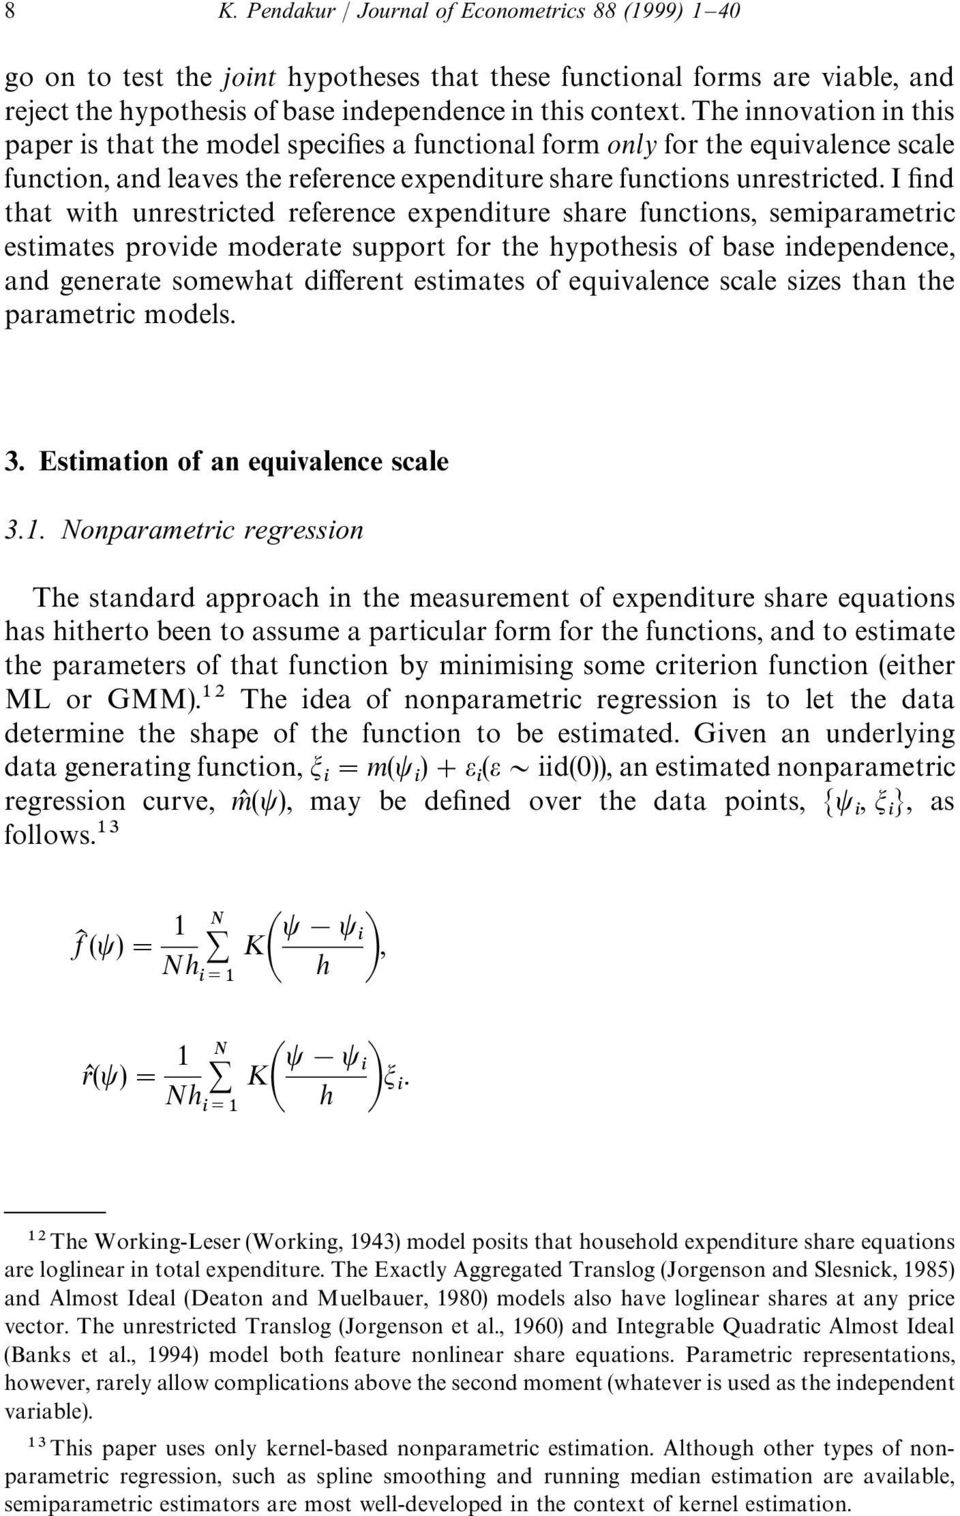 I find that with unrestricted reference expenditure share functions, semiparametric estimates provide moderate support for the hypothesis of base independence, and generate somewhat different